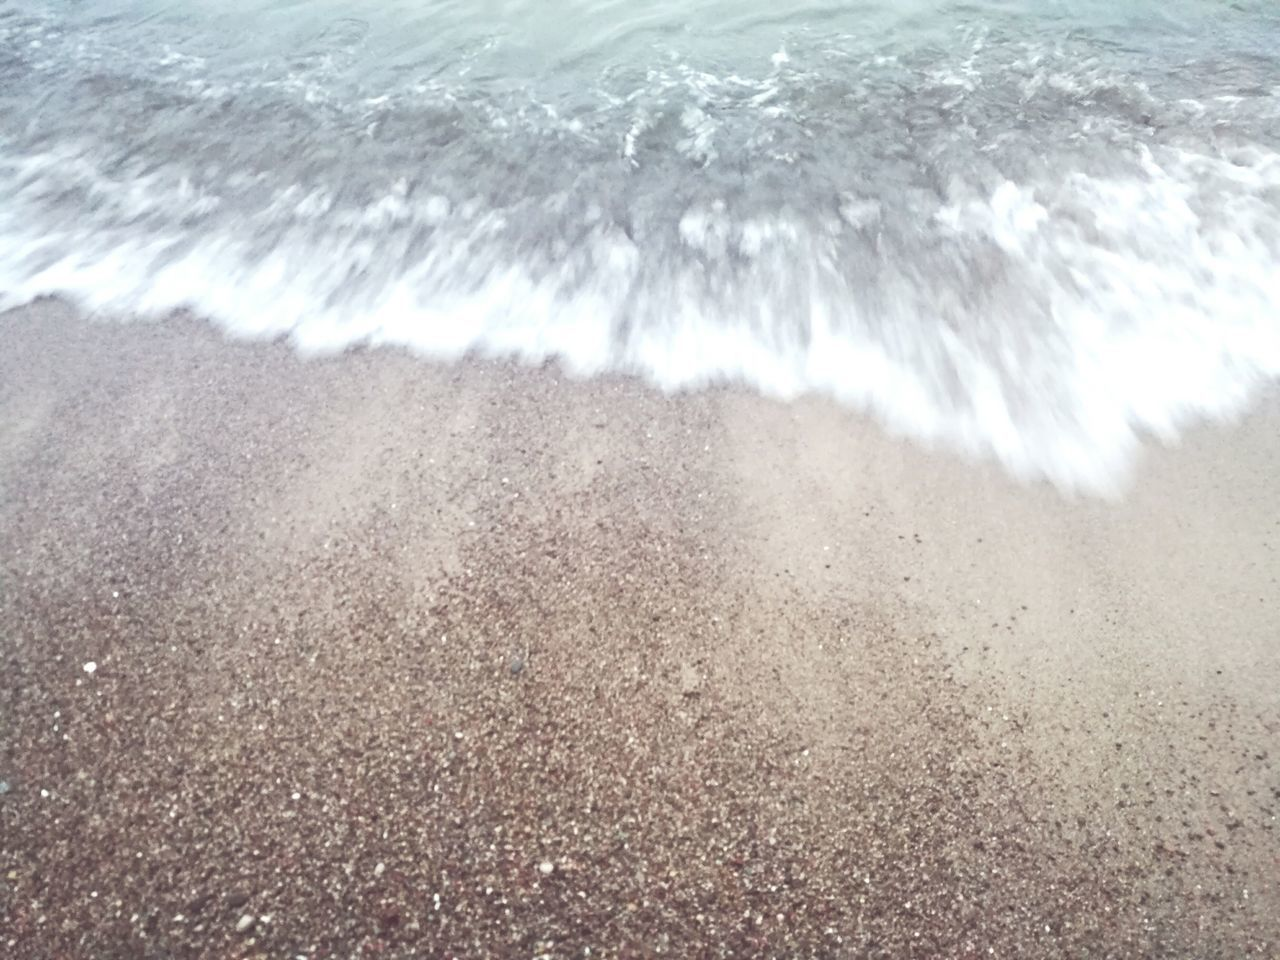 water, sea, wave, nature, beach, day, outdoors, no people, motion, sand, beauty in nature, power in nature, close-up